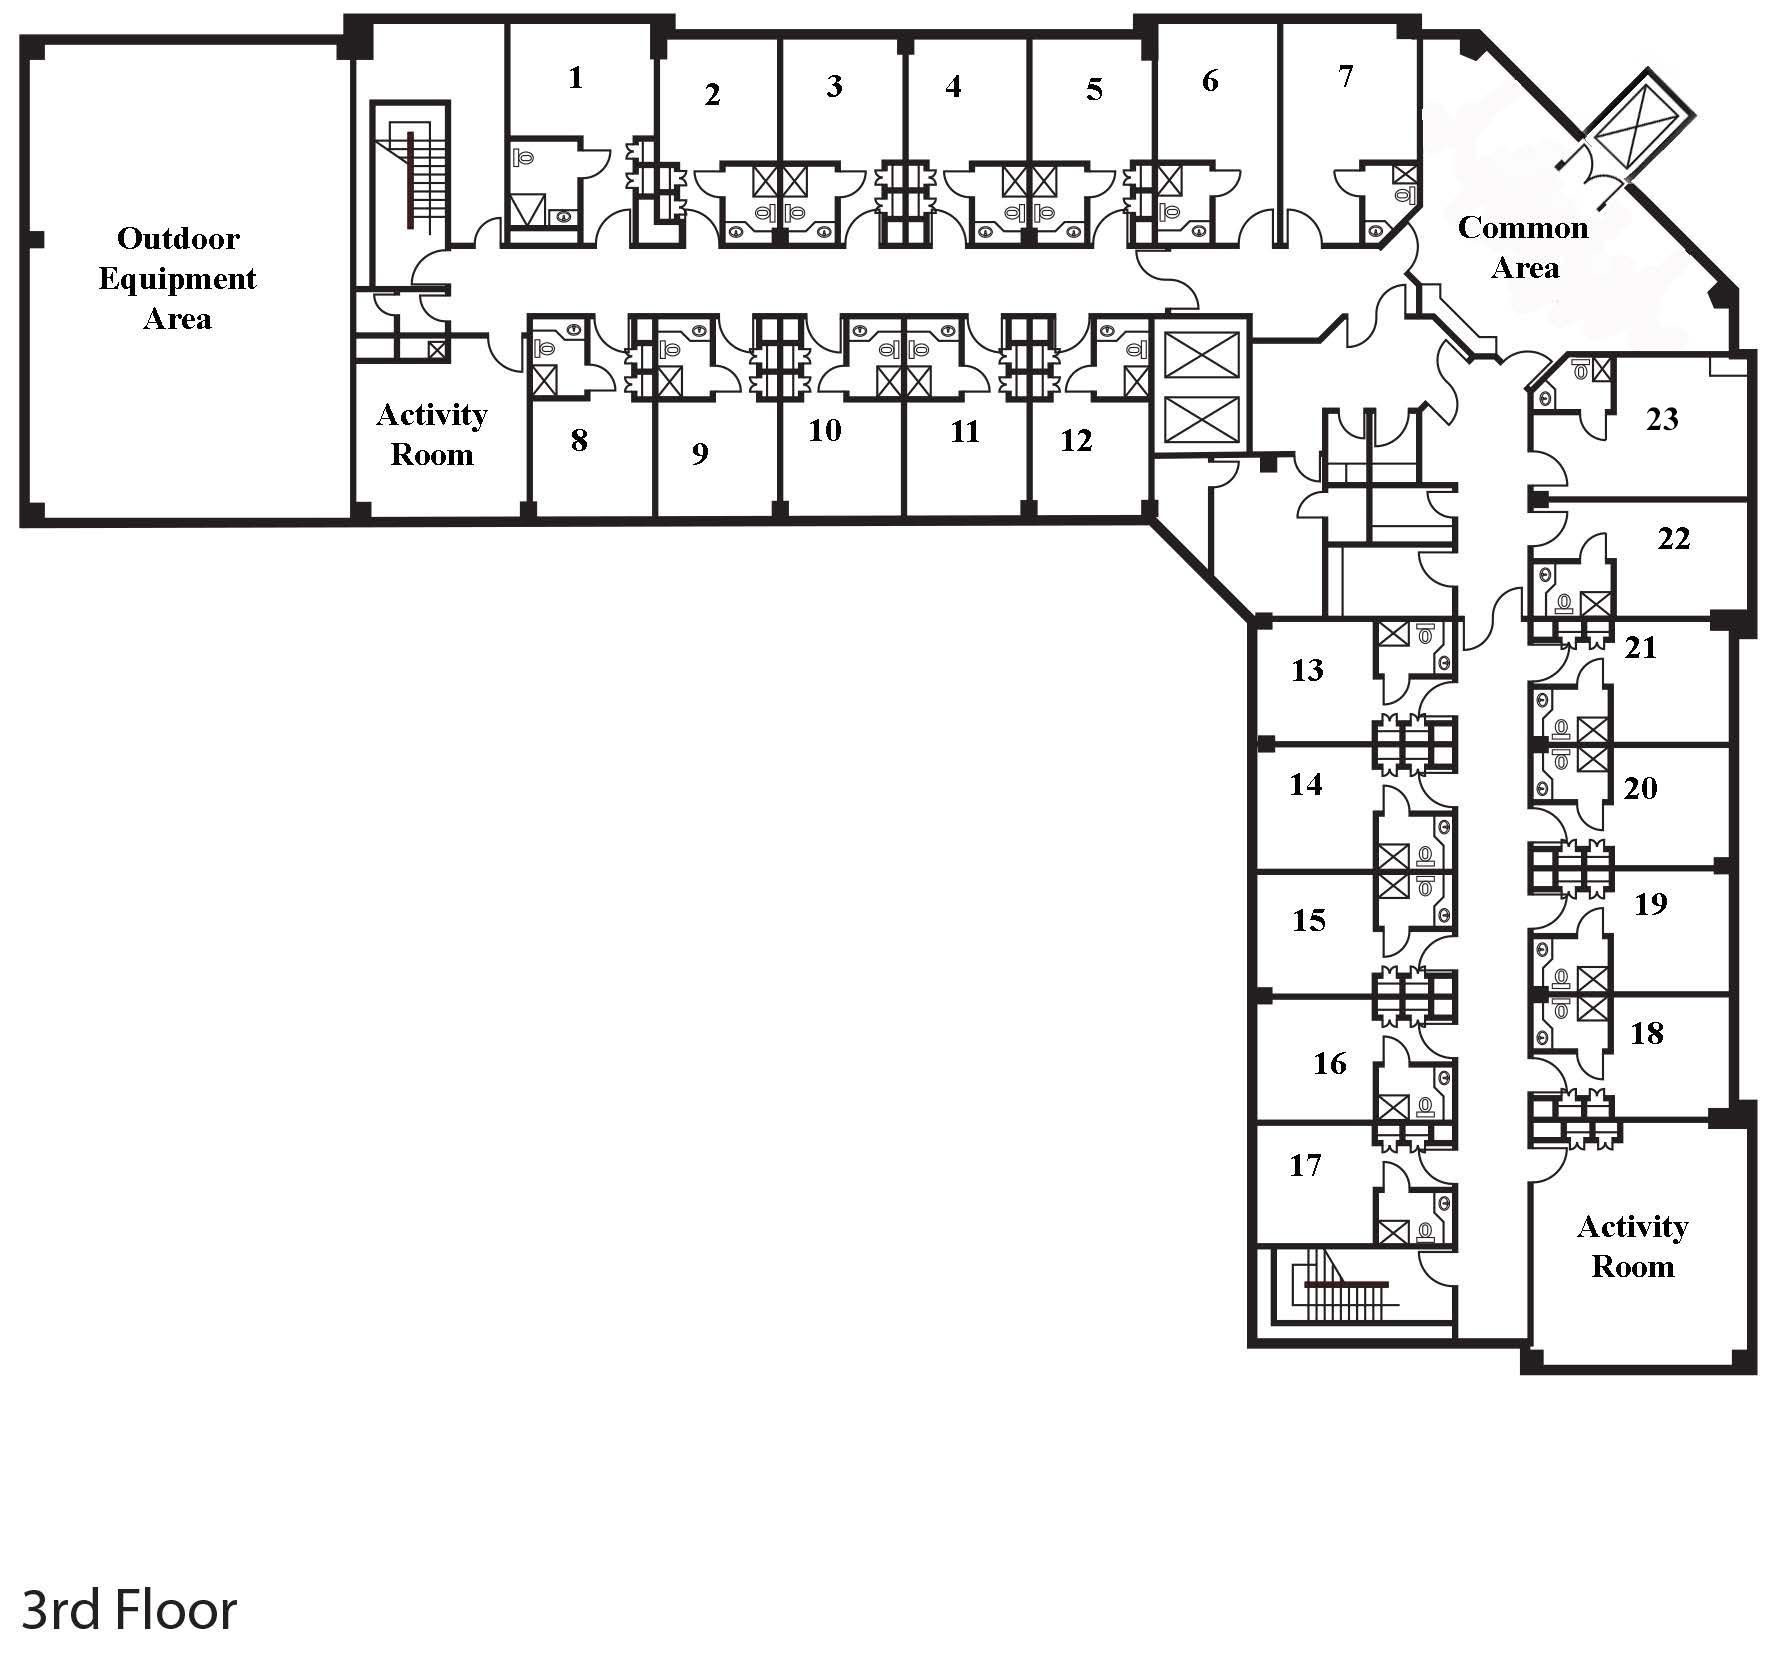 Image Result For Assisted Living Floor Plans Hotel Floor Plan Hospital Floor Plan Hotel Room Plan